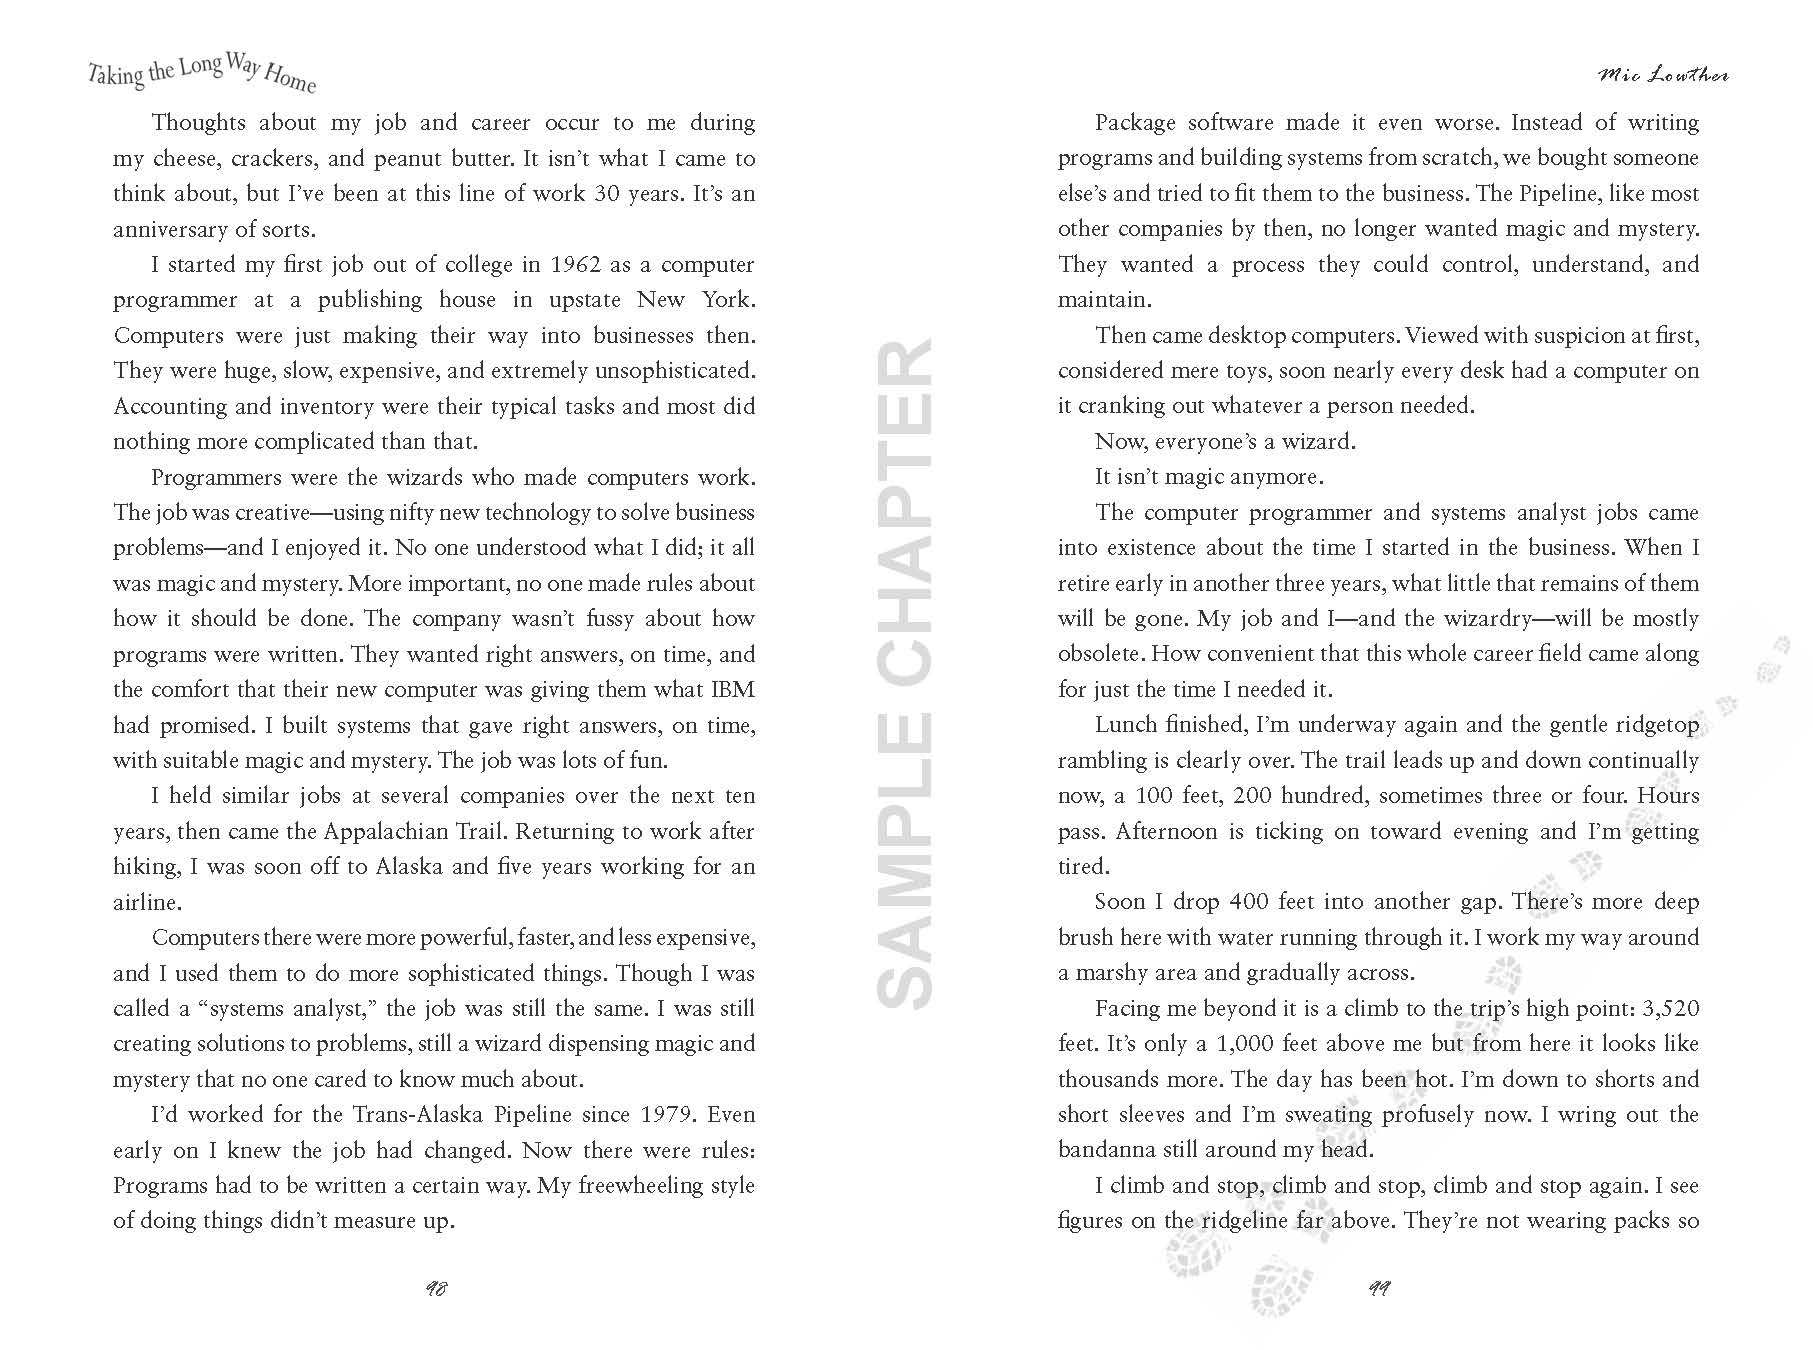 Taking The Long Way Home sample chapter pg 9 & 10